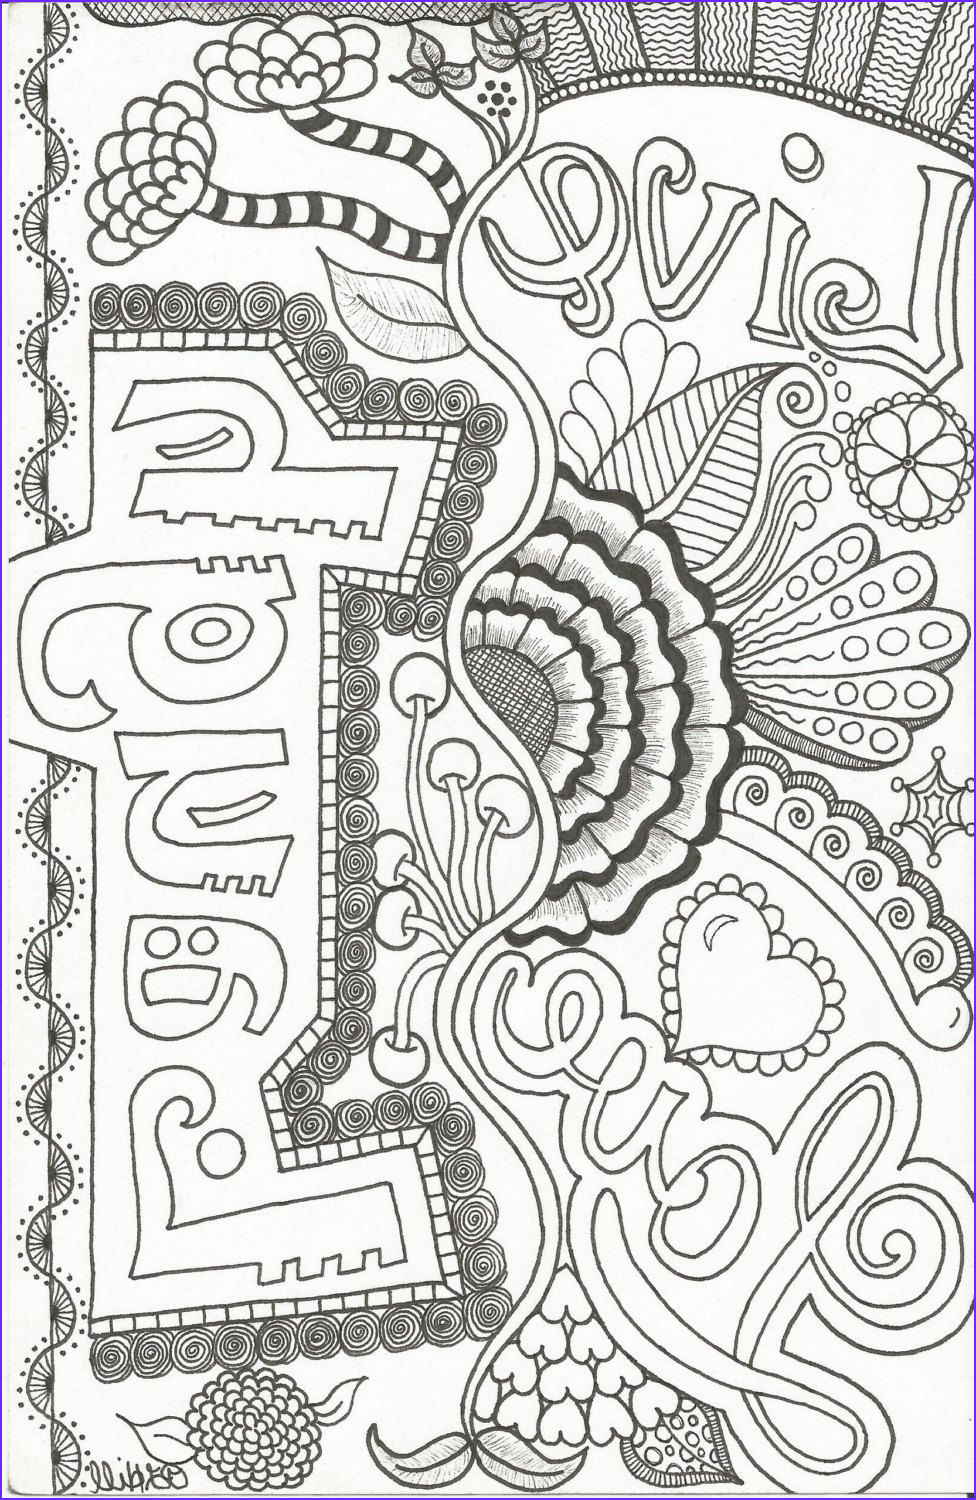 Free Coloring Book Pages for Adults Best Of Images Live Love Laugh Doodle by Plhill